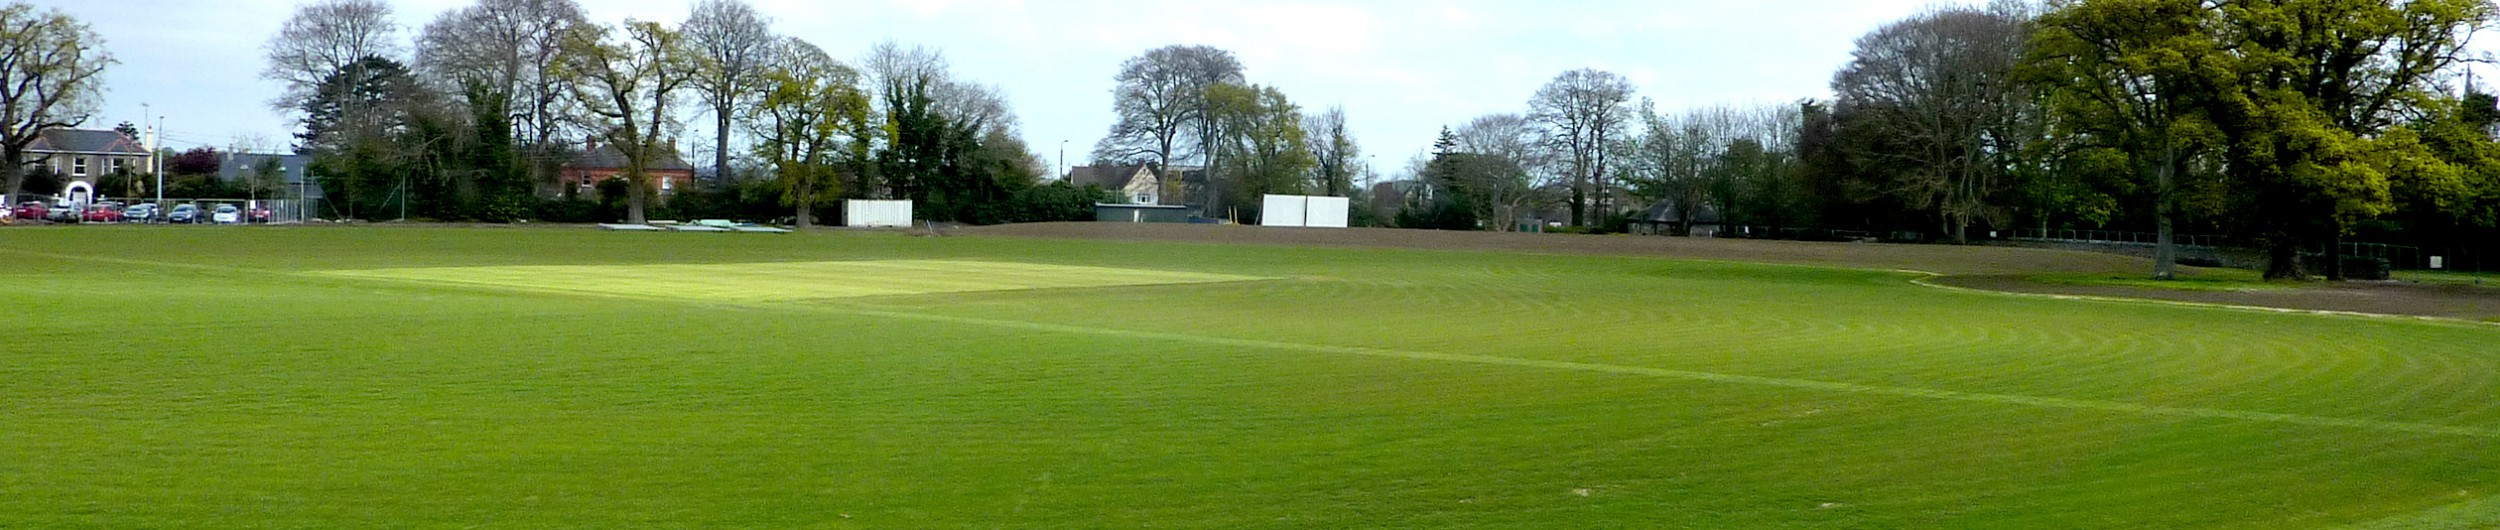 A Cricket Pitch